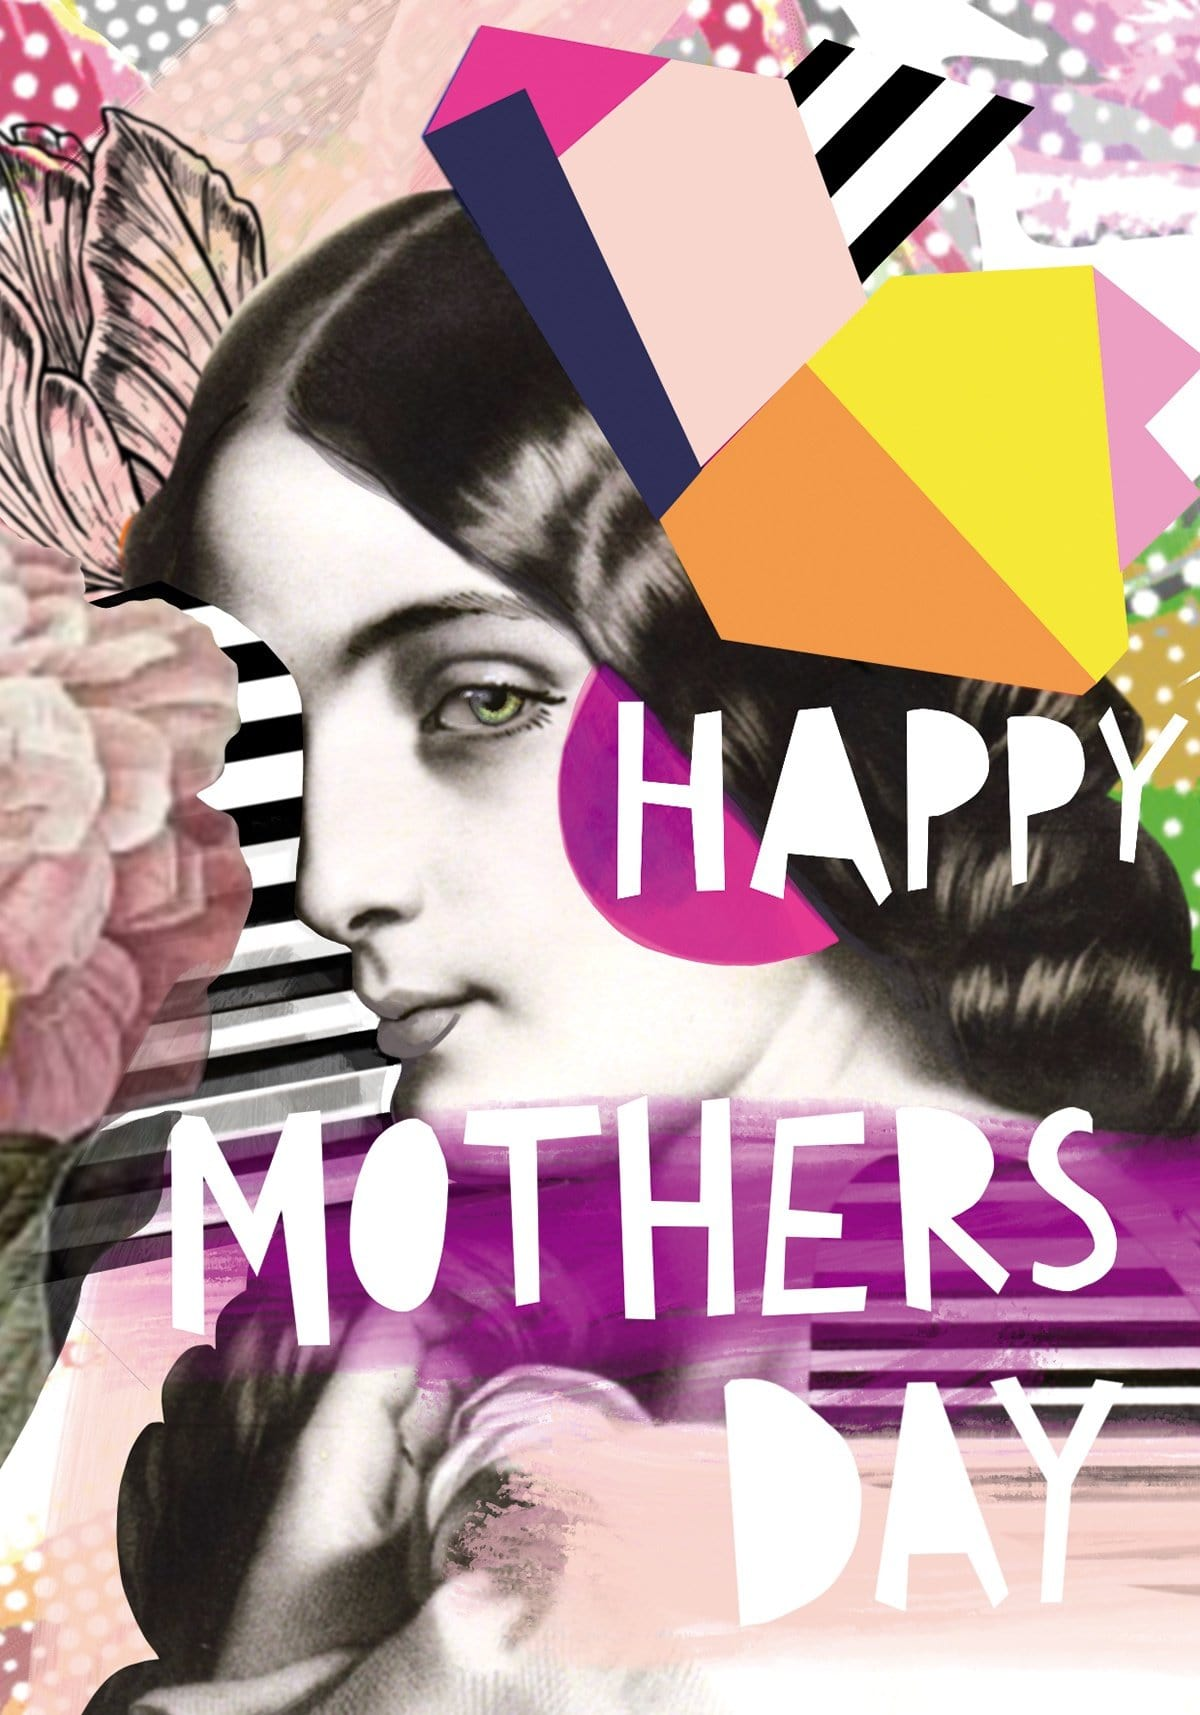 Motley Blooms - Mothers Day Greeting Card